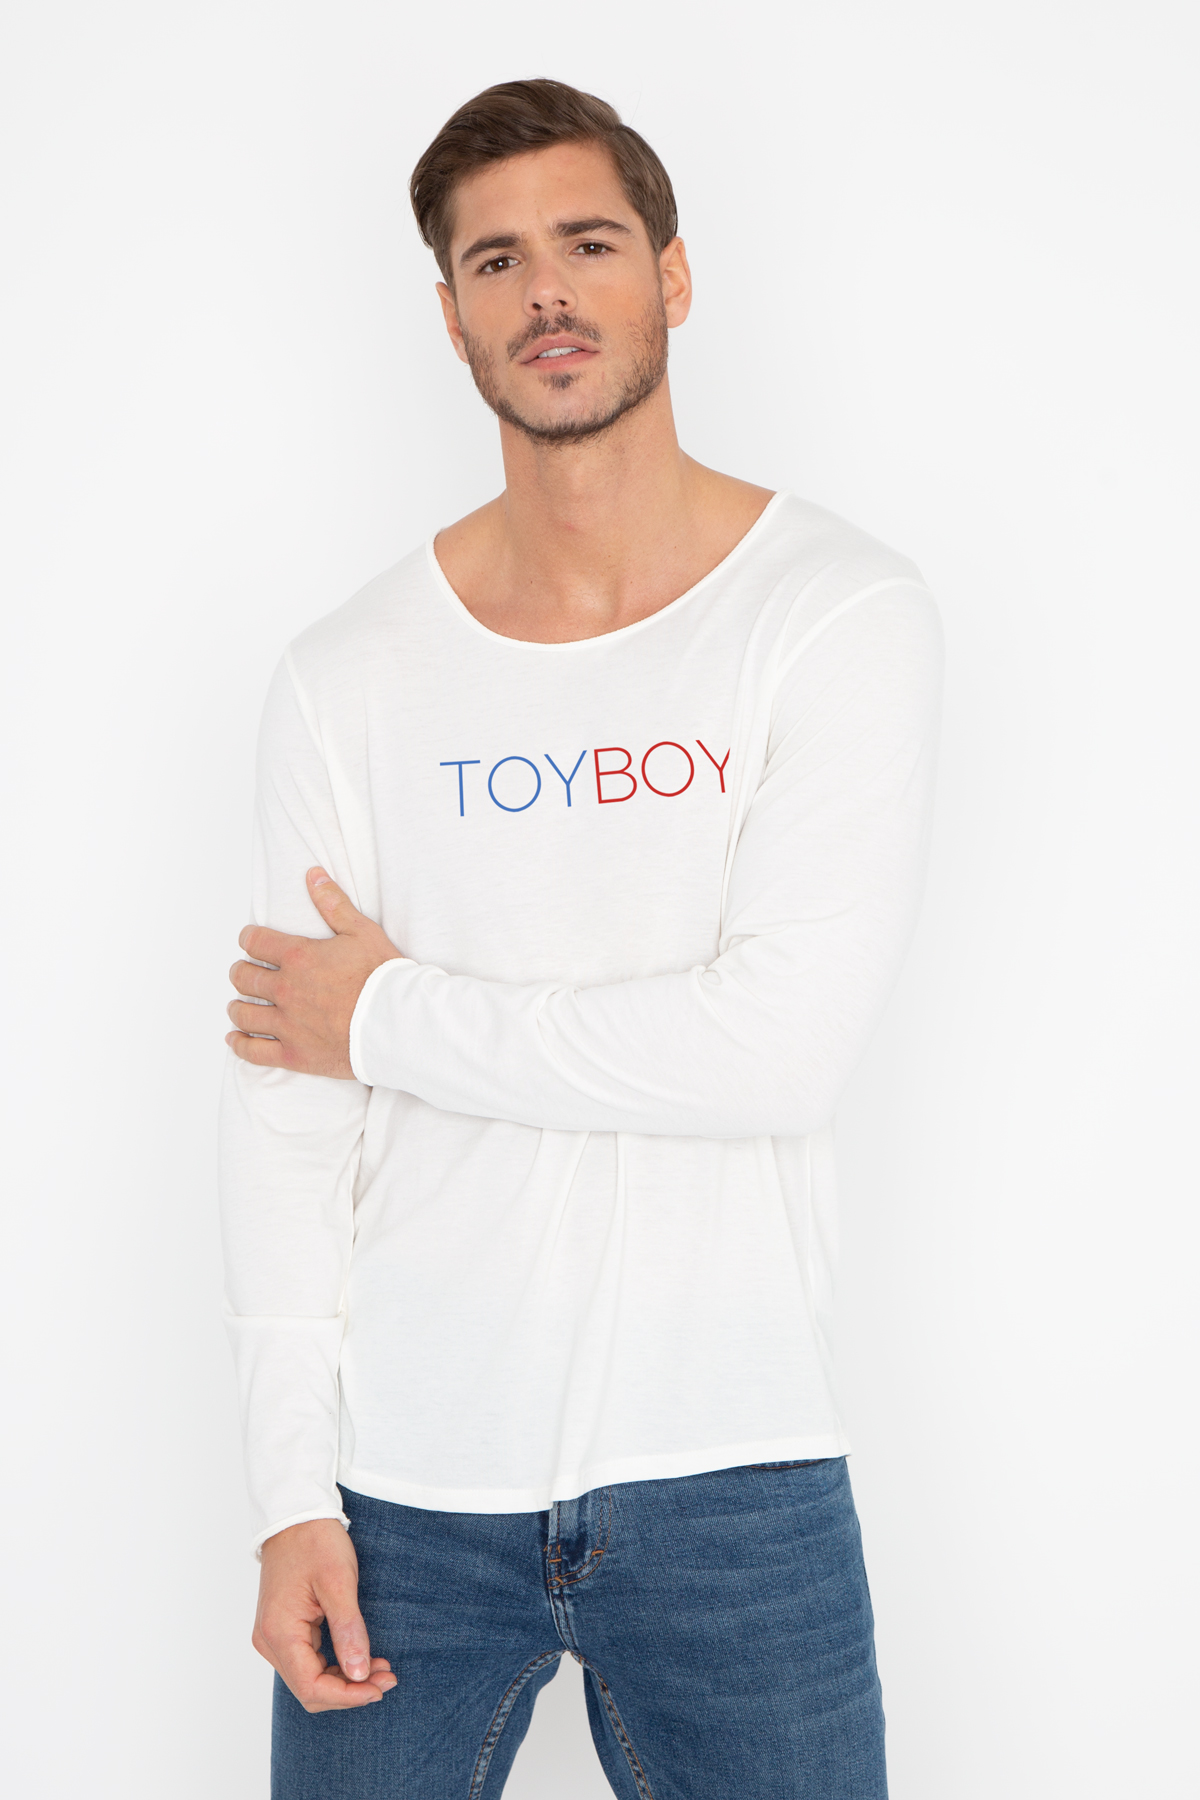 Photo de Soldes homme Tshirt Percy TOY BOY chez French Disorder